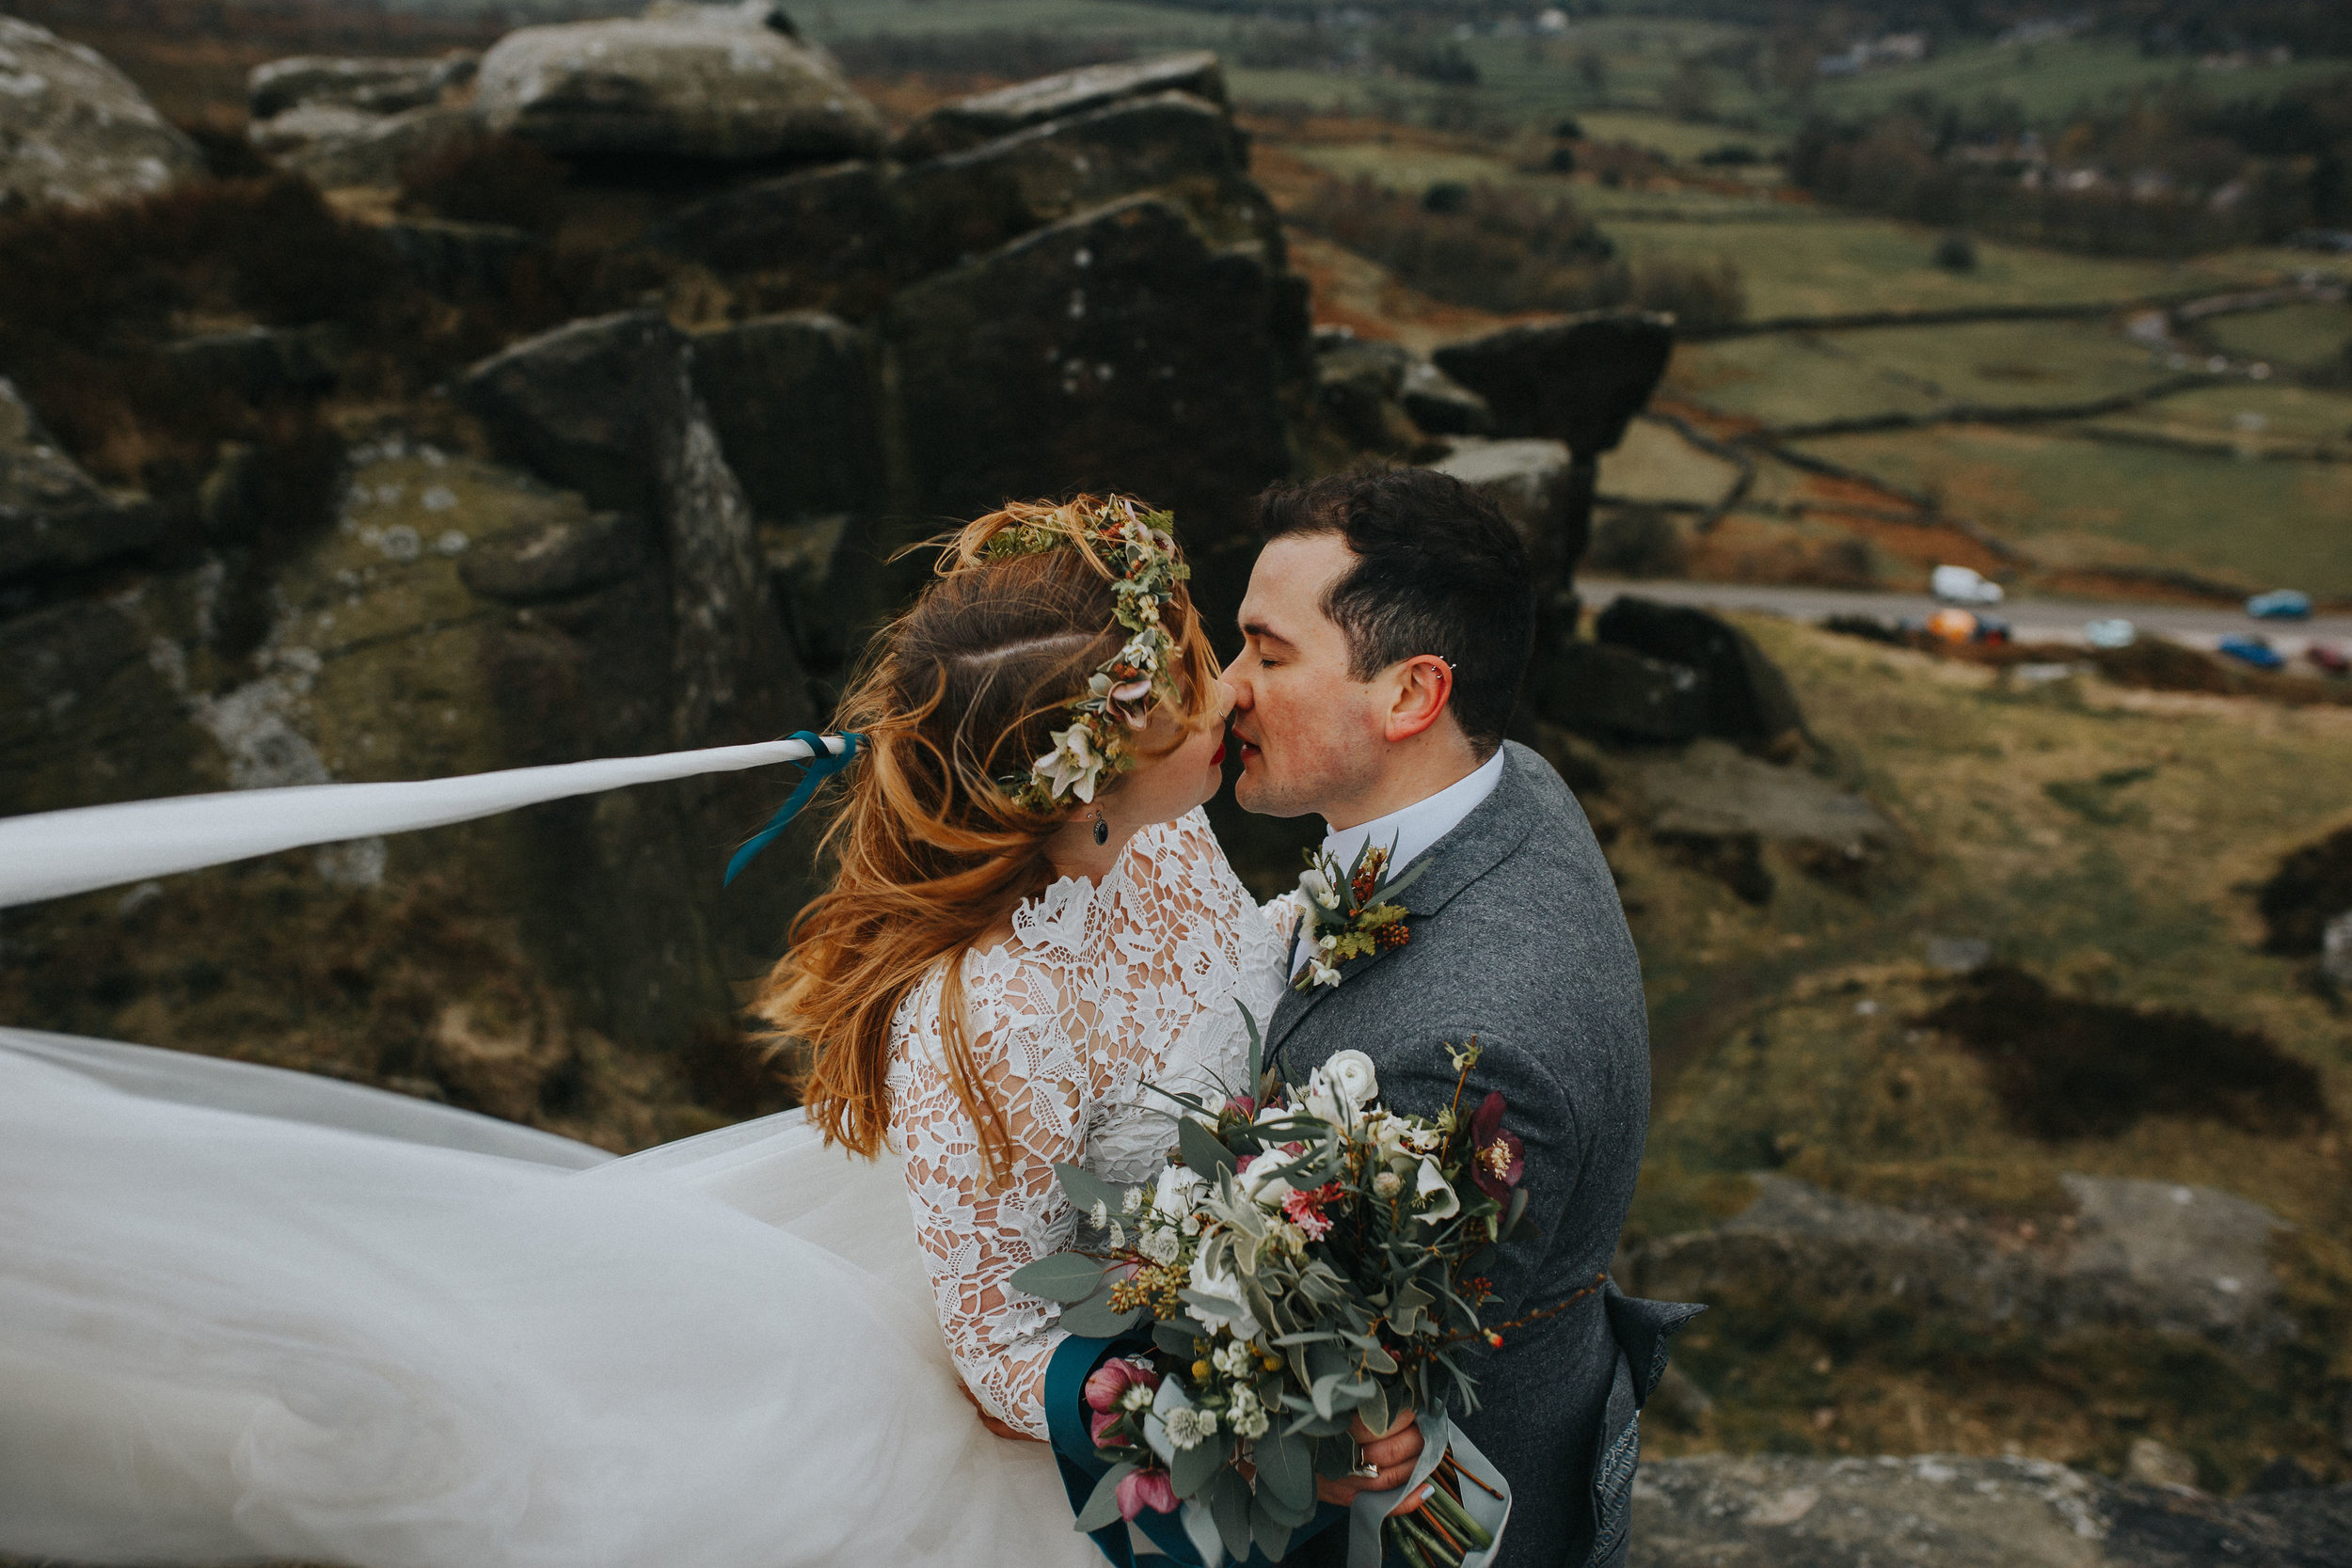 Rosie-peak district-bride-bespoke-long sleeved-lace-tulle-winter-wedding-dress-matlock-susanna-greening-17